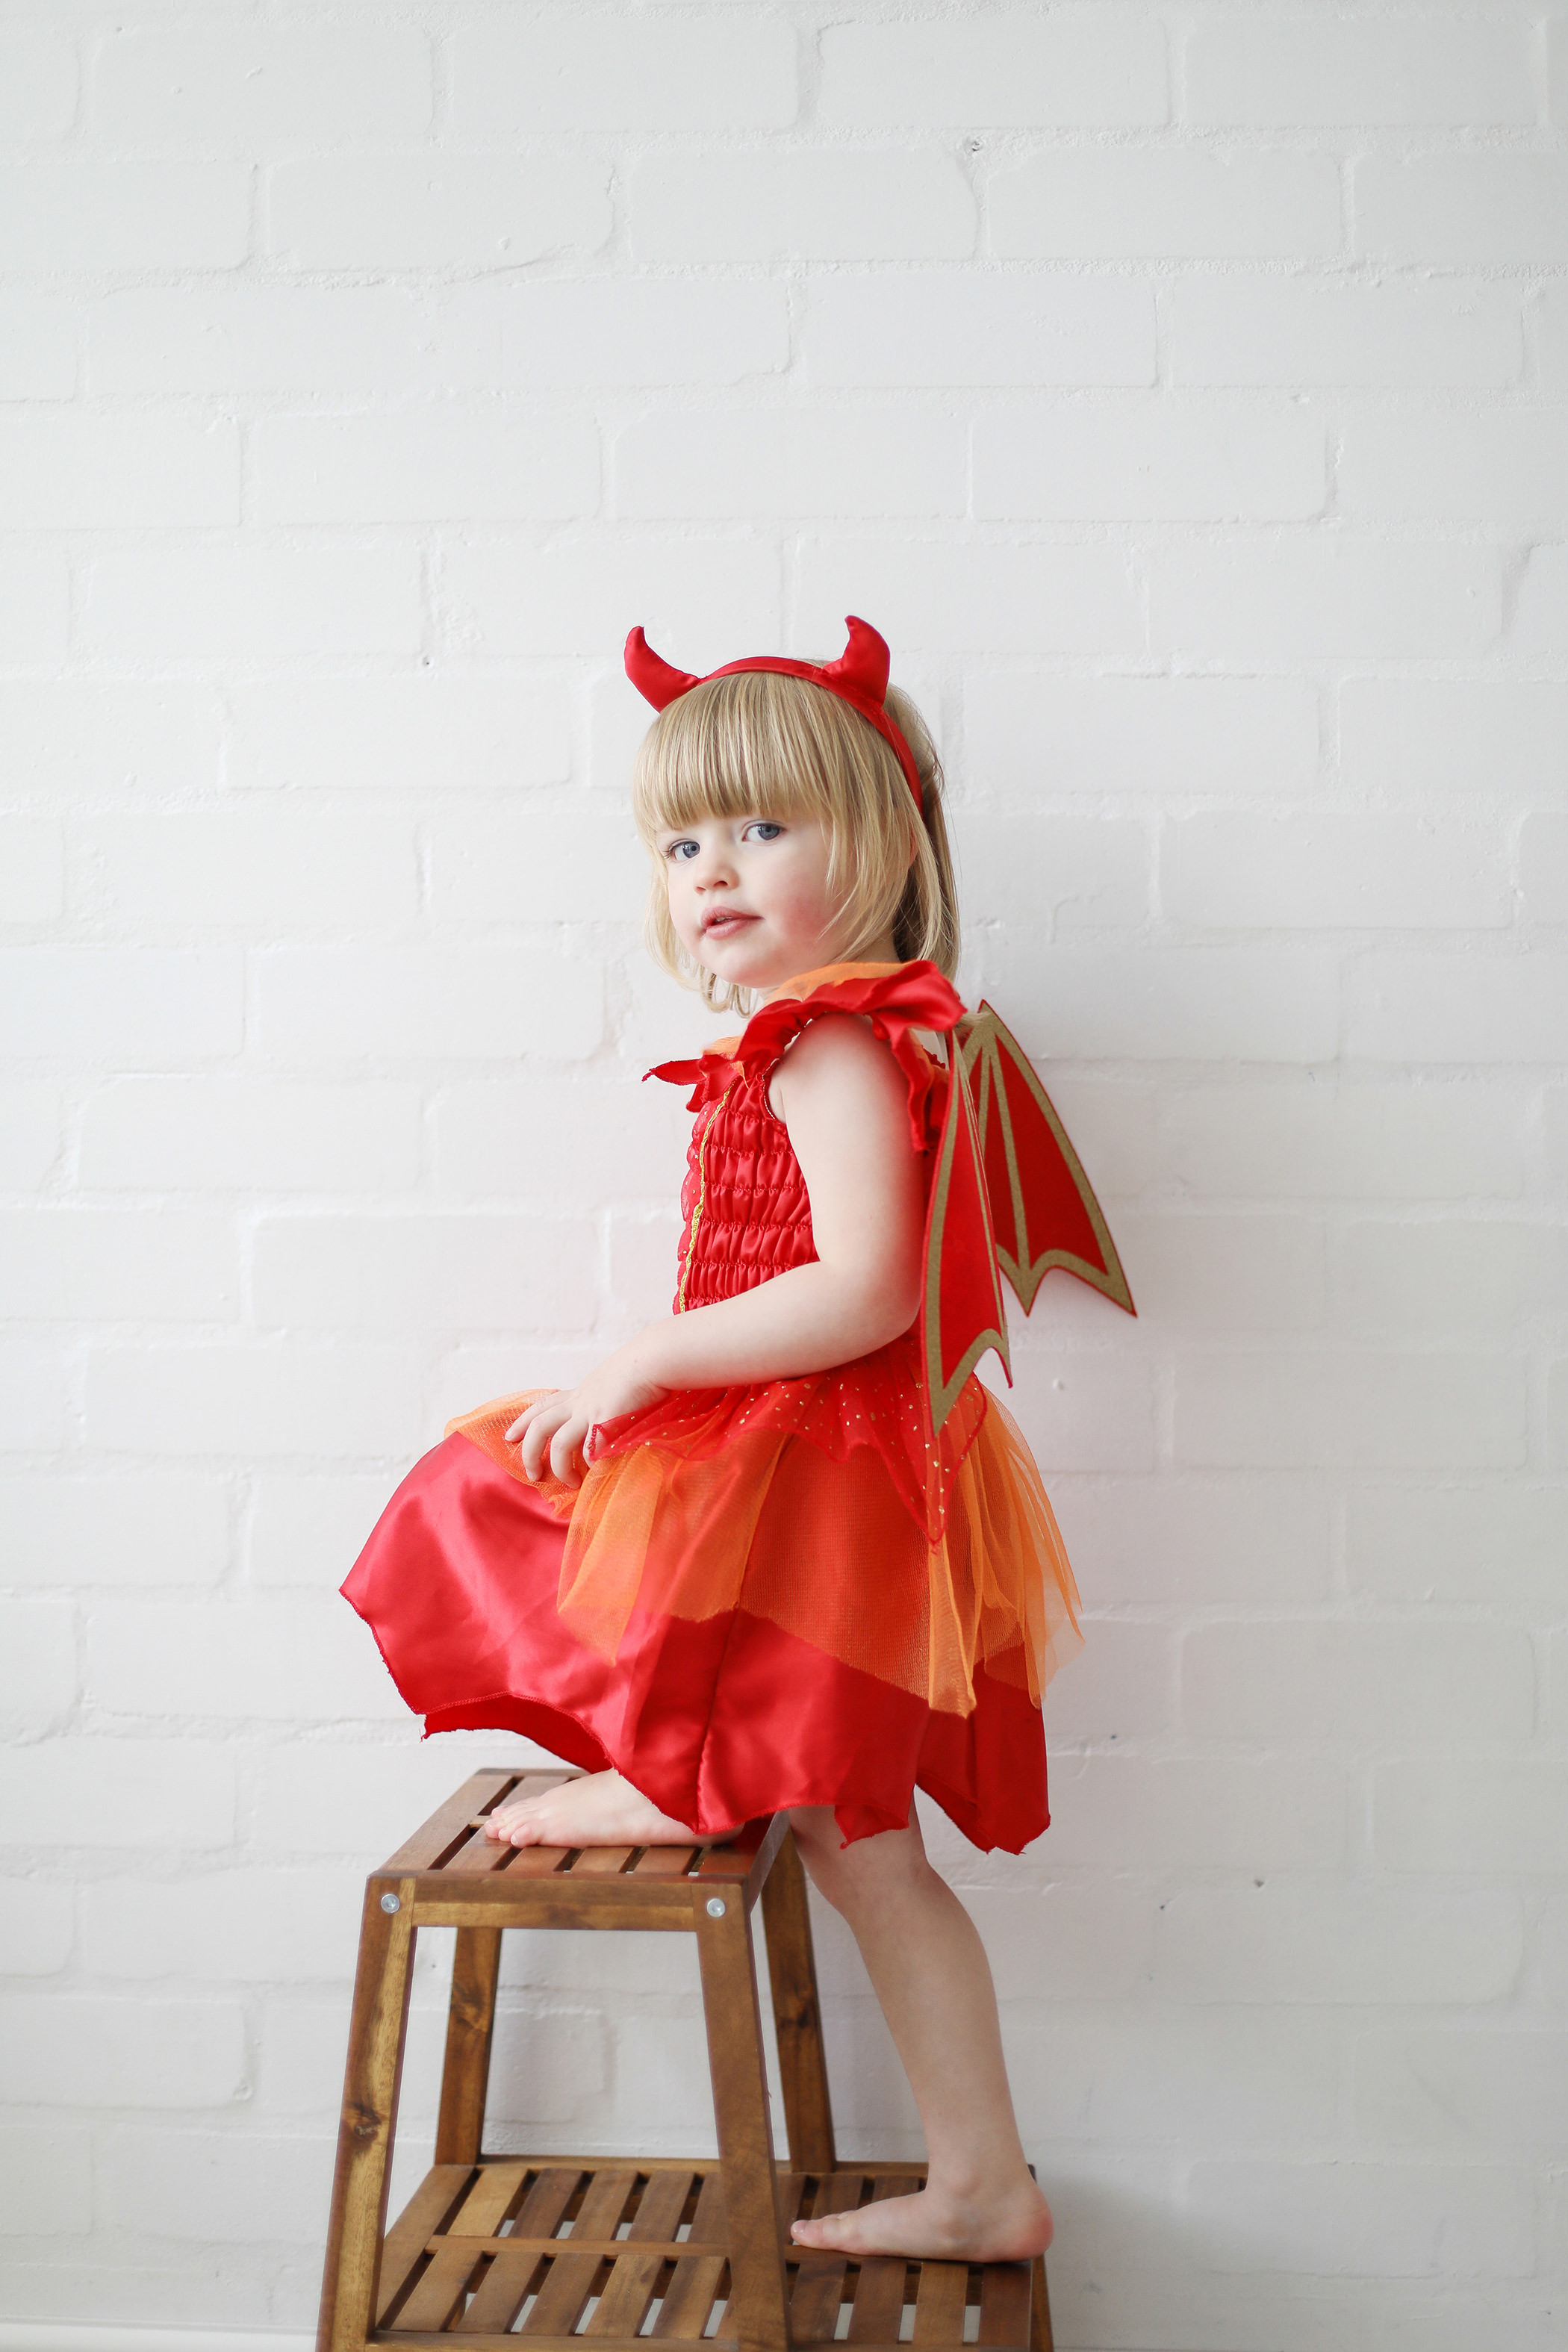 Fancy dress photoshoot Stockport